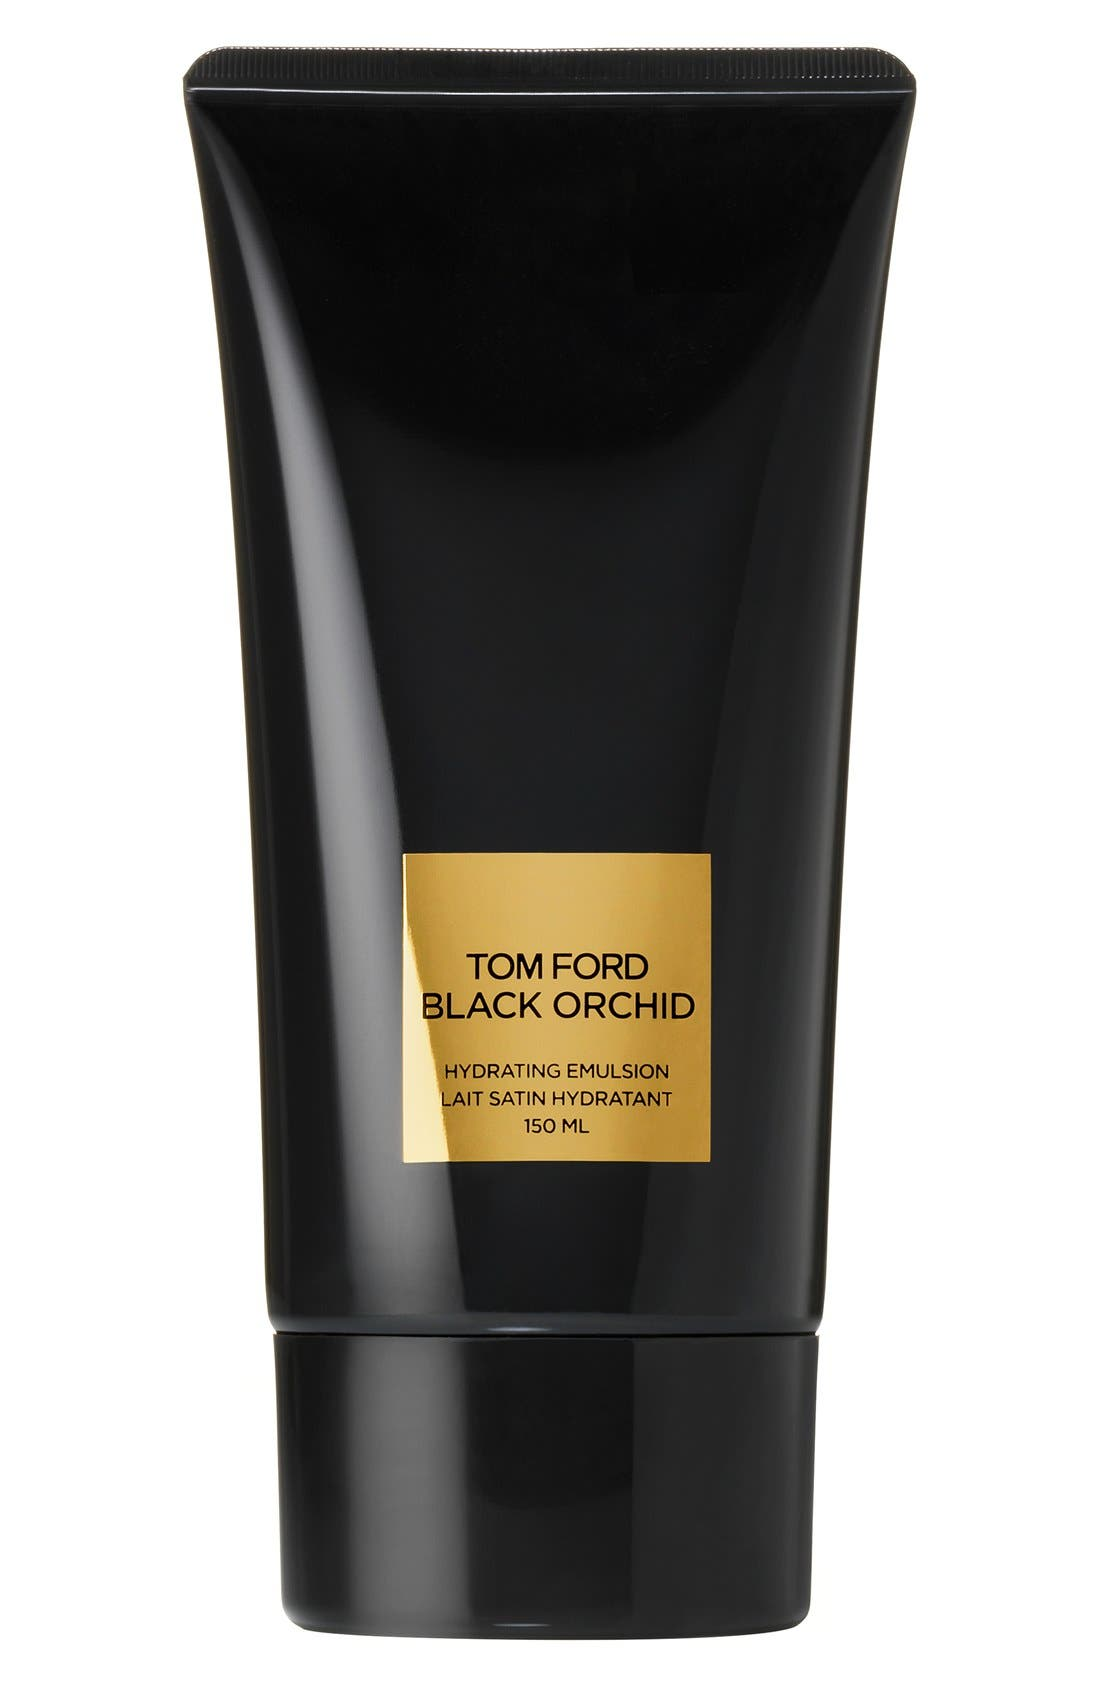 Tom Ford 'Black Orchid' Hydrating Emulsion